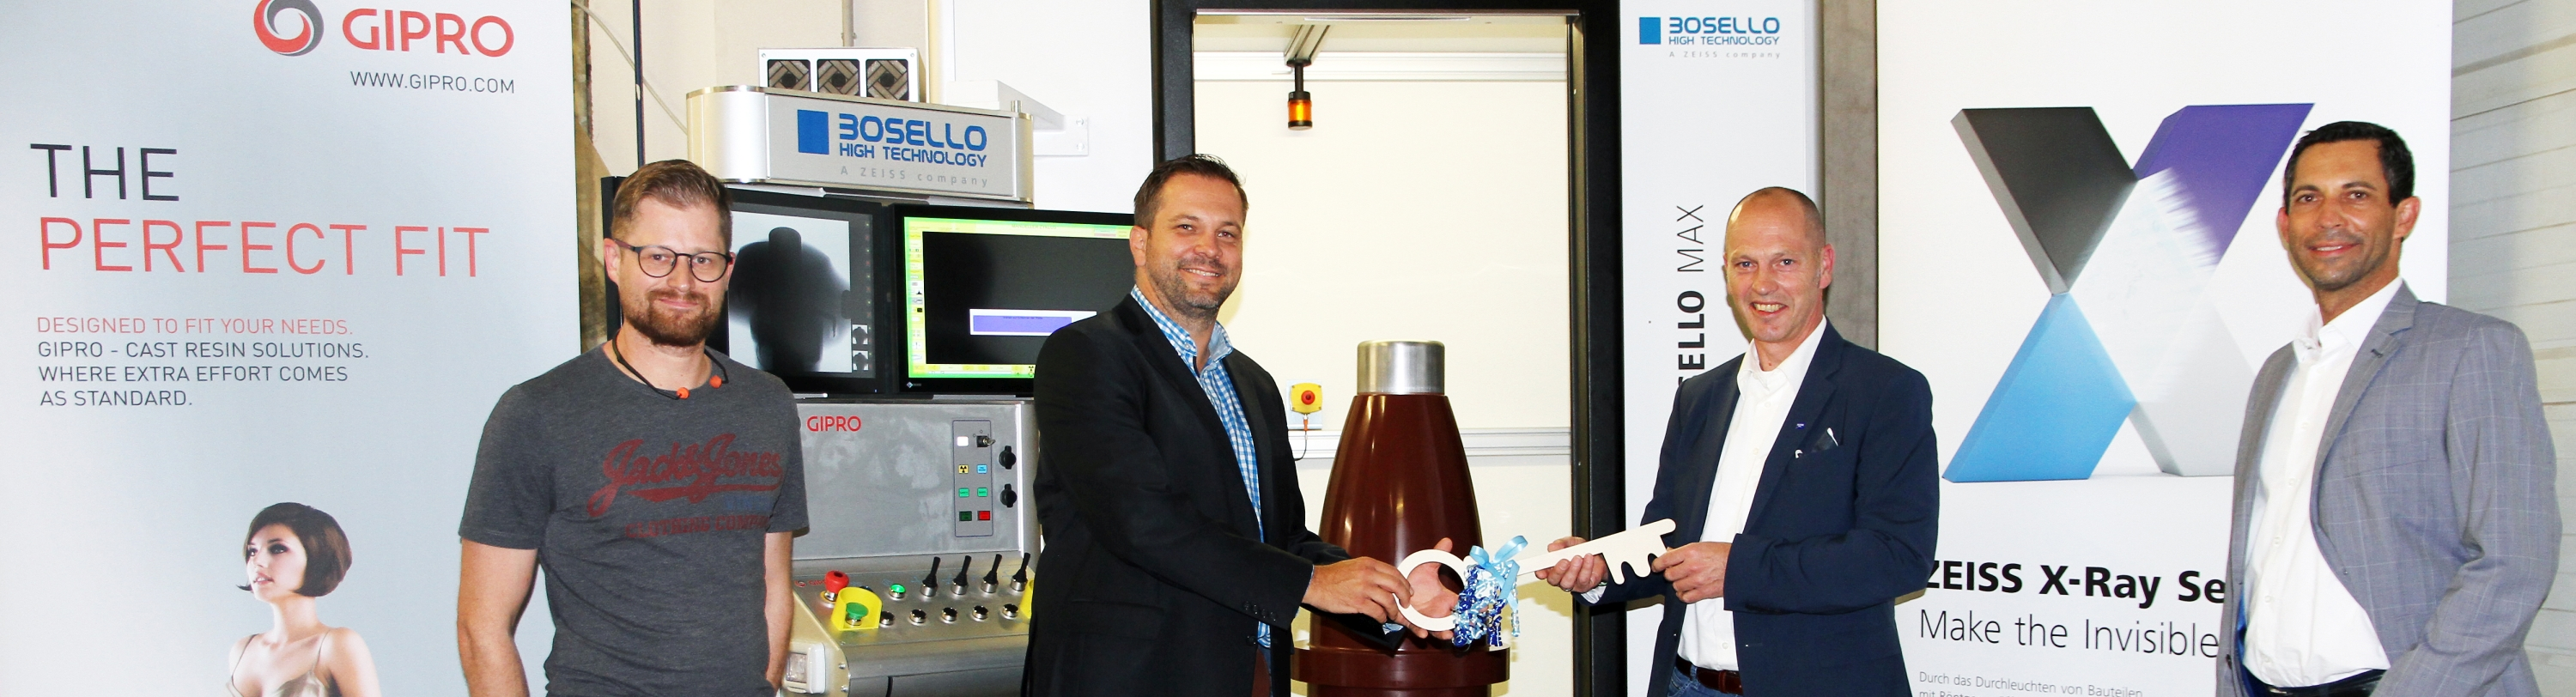 Zeiss delivers new X-ray Bosello SRE Max to GIPRO insulator's team